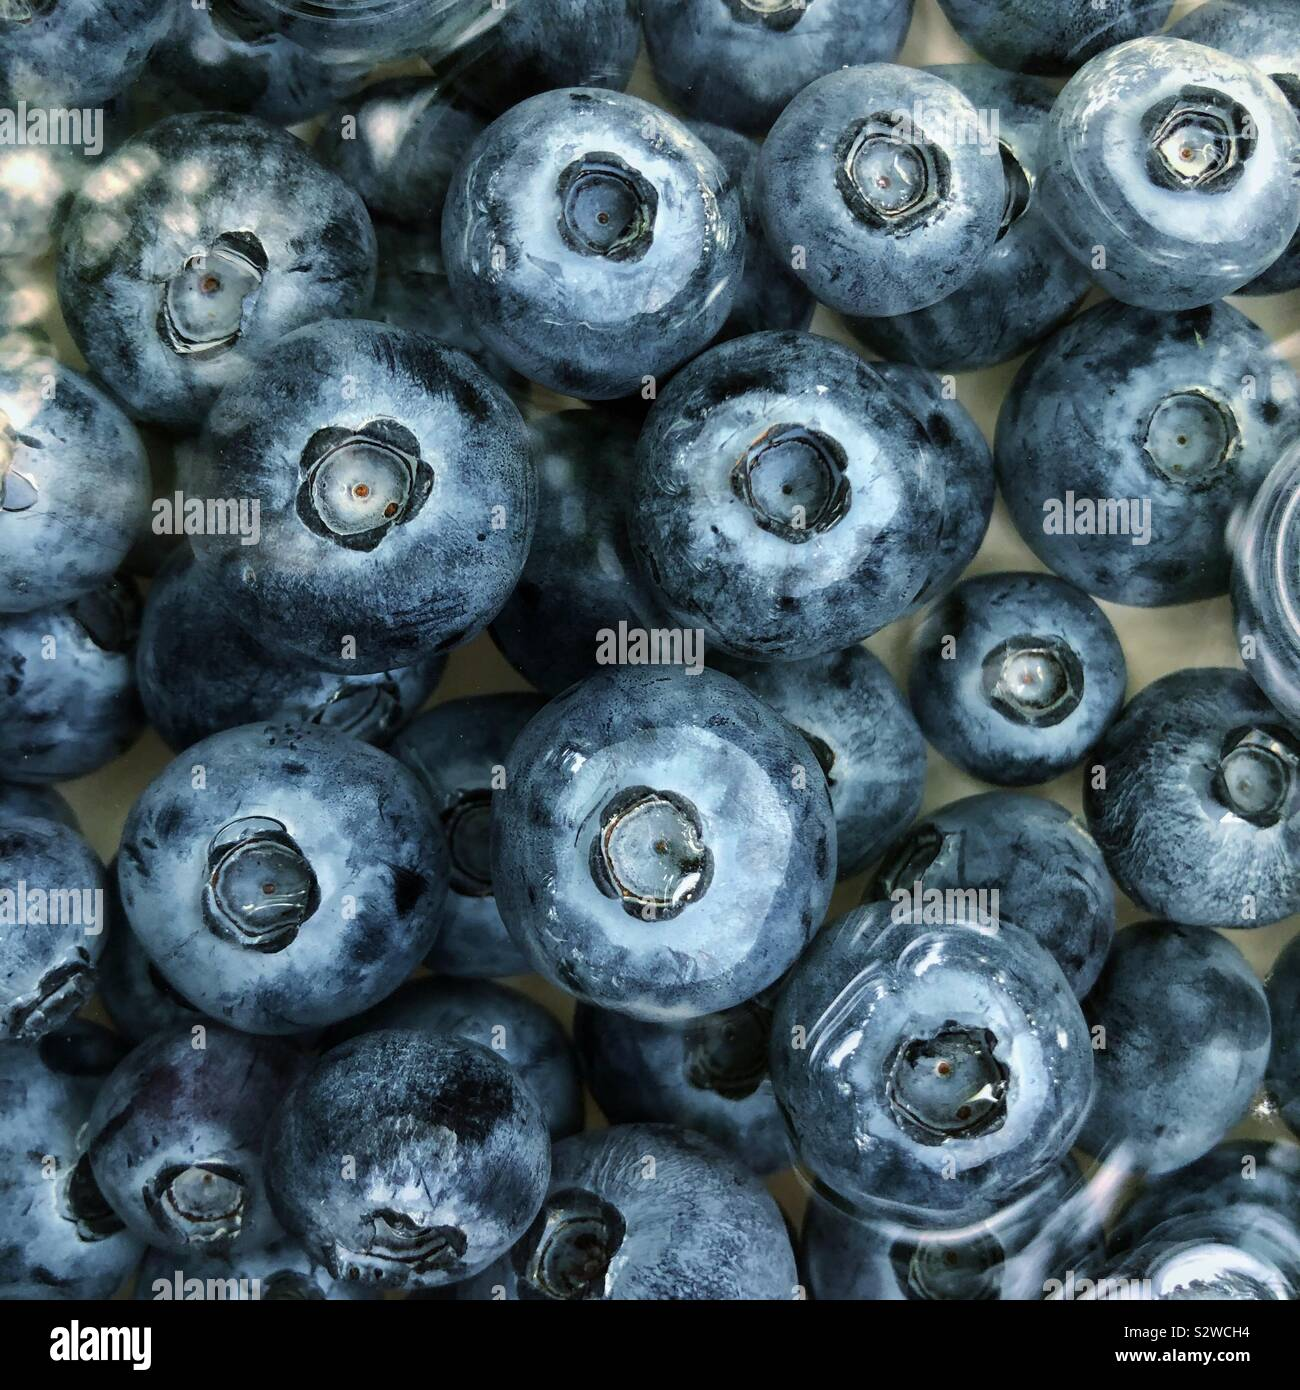 Bowl of floating blueberries. Stock Photo